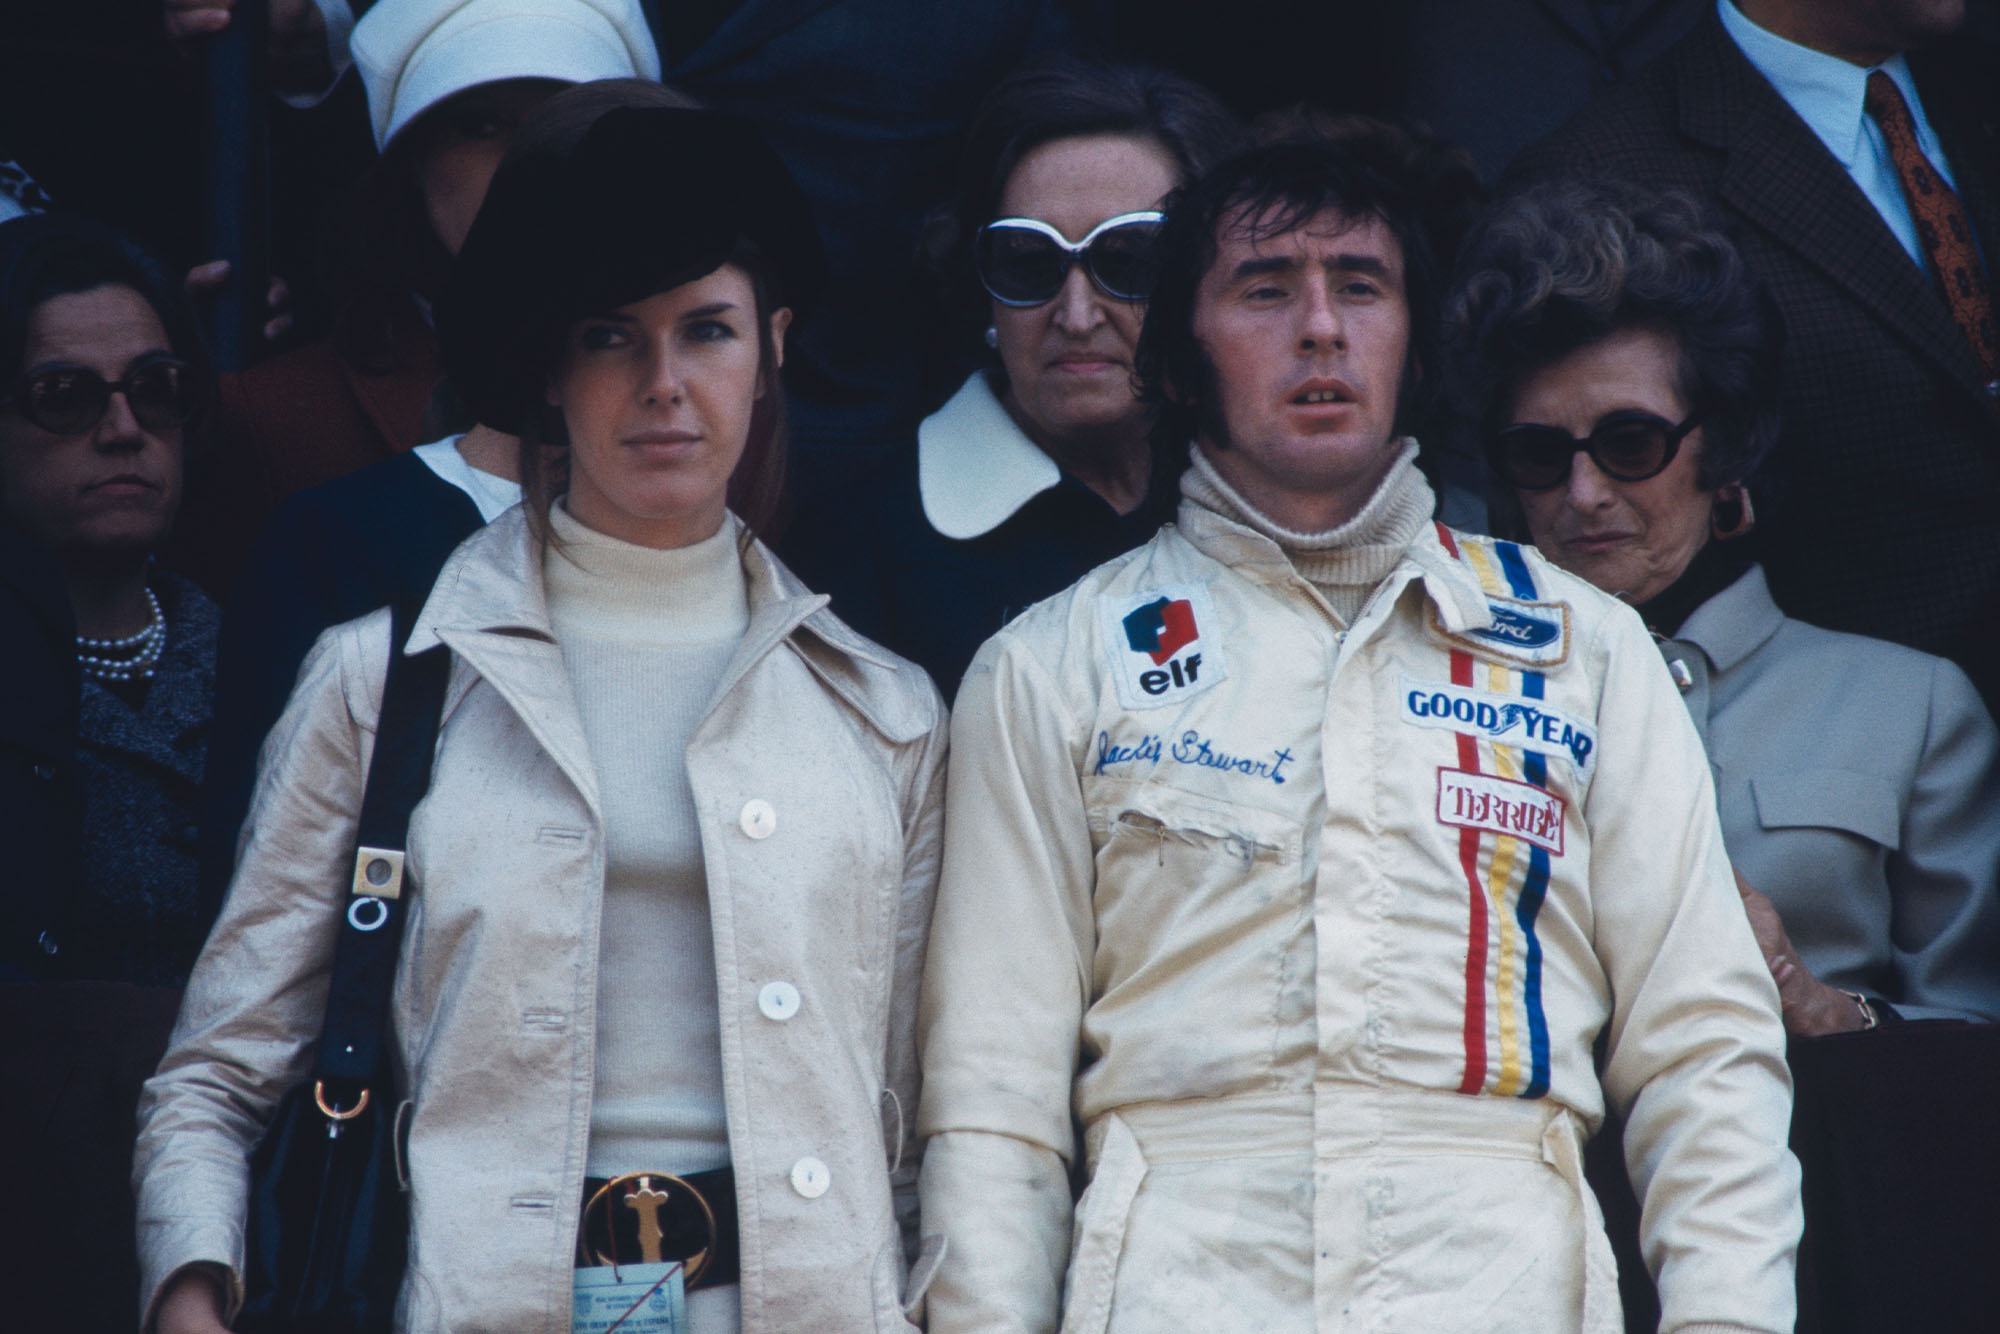 Jackie Stewart stands on the podium with his wife Helen after winning the 1971 Spanish Grand Prix